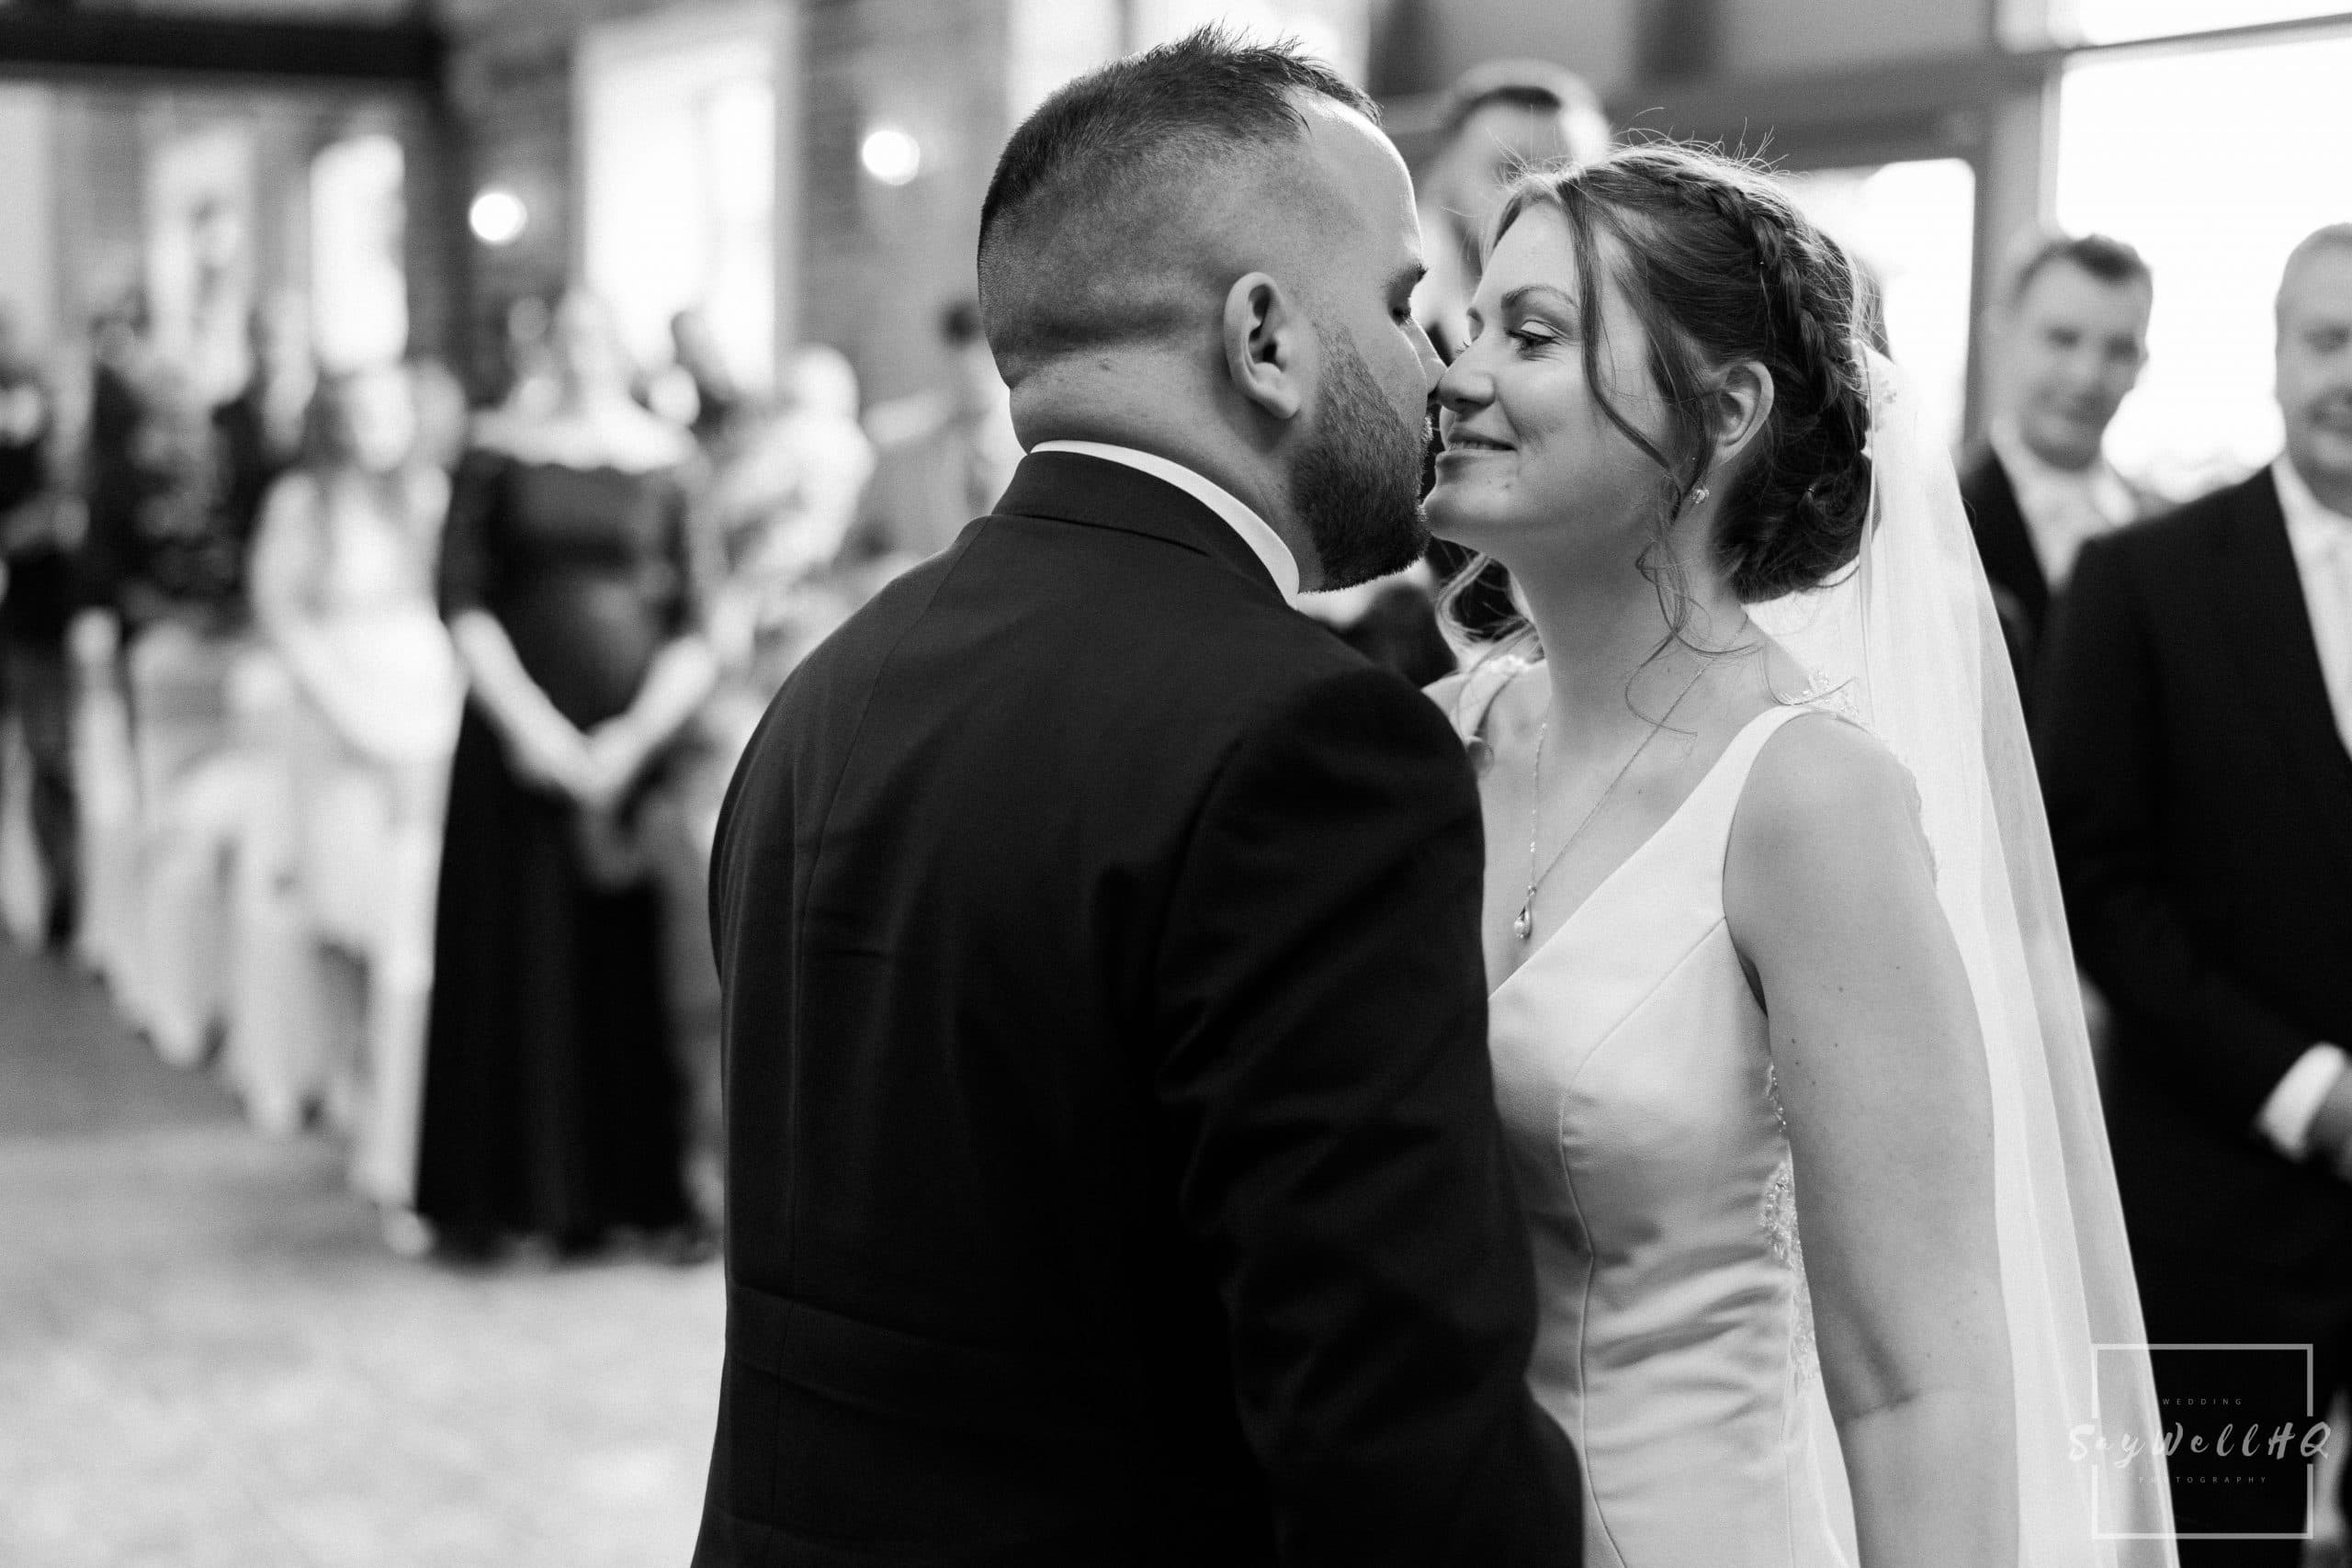 Bride and groom kiss each other during their wedding ceremony at Goosedale - Wedding Photography by goosedale wedding photographer Andy Saywell of SaywellHQ